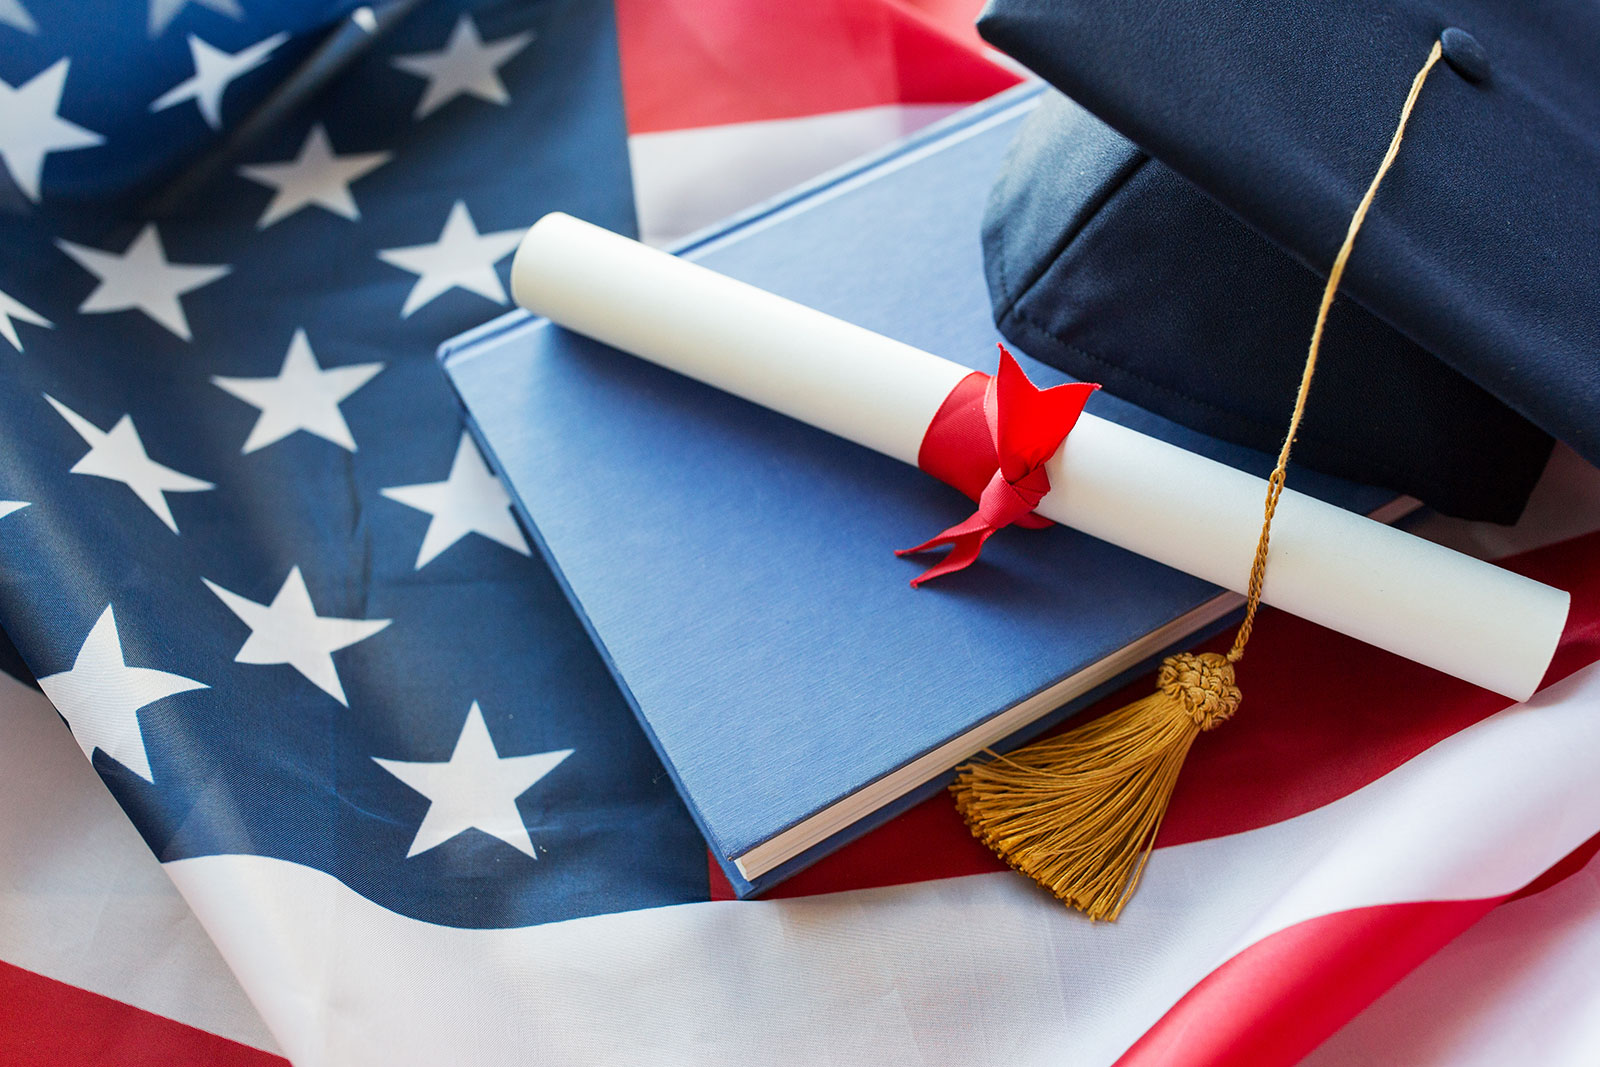 5 Key Challenges Facing U.S Higher Education